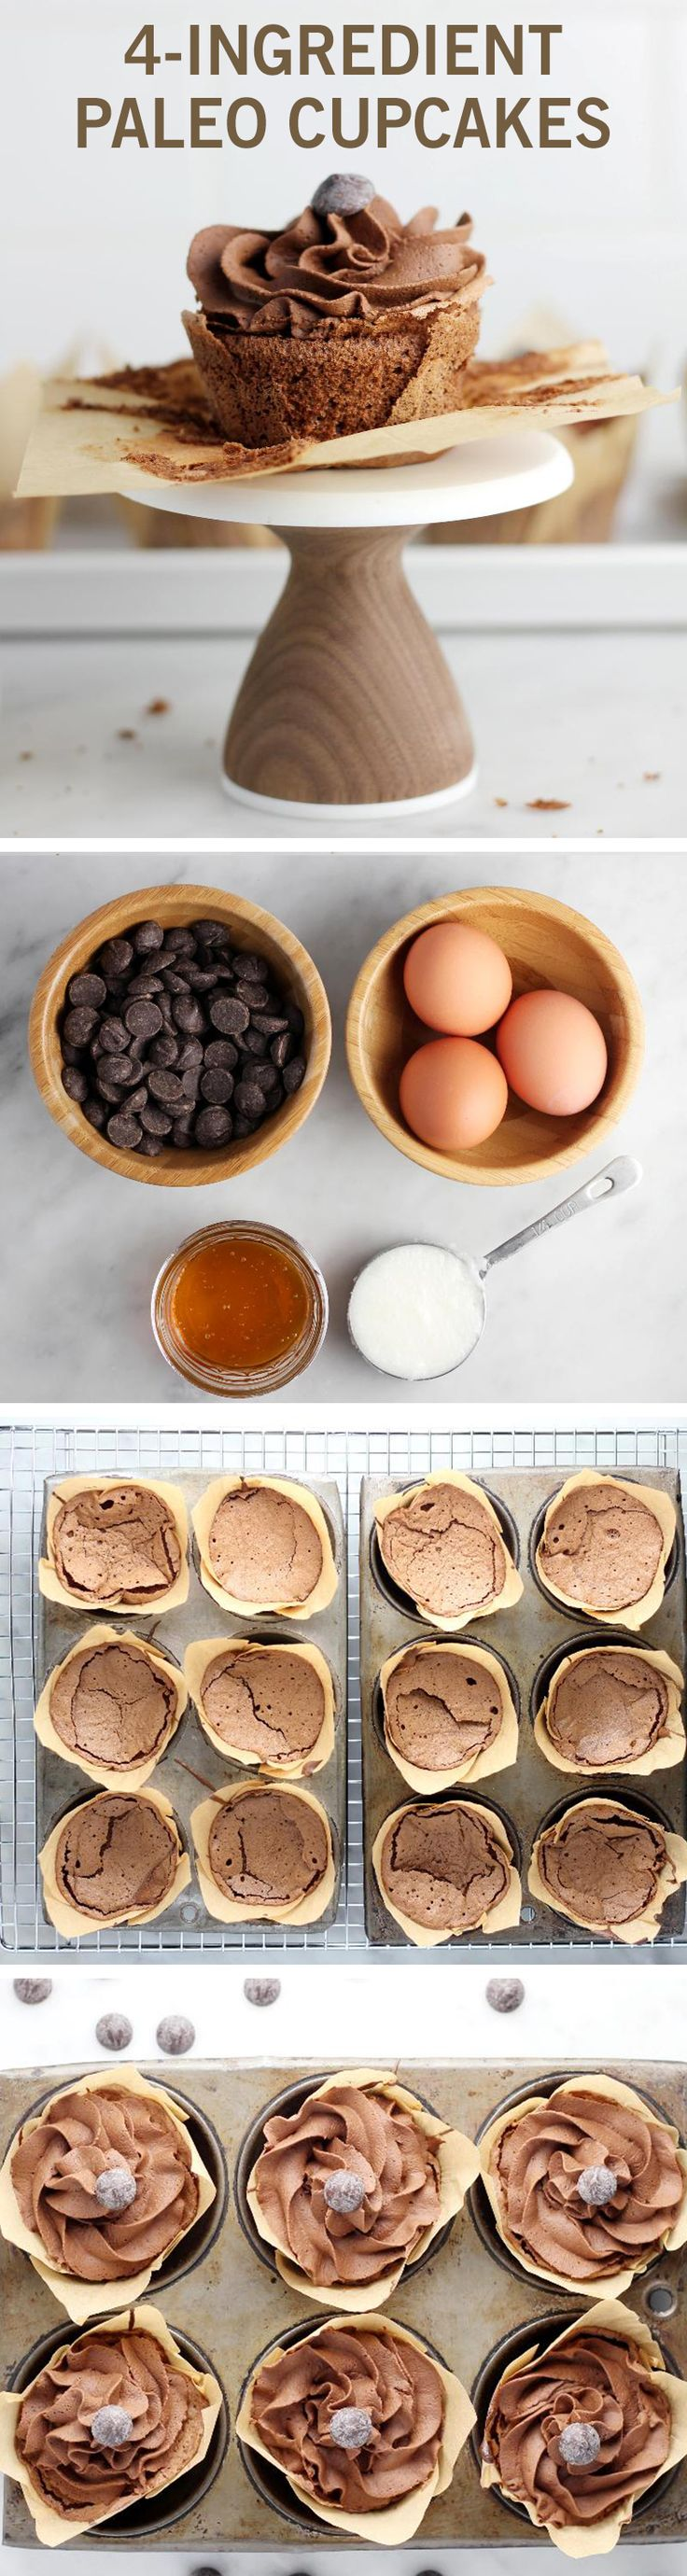 If your next party will feature guests with dietary restrictions, these cupcakes are a perfect treat. They are completely dairy-free and gluten-free, and they require just four ingredients (coconut oil, eggs, honey, and dairy-free chocolate). #paleo